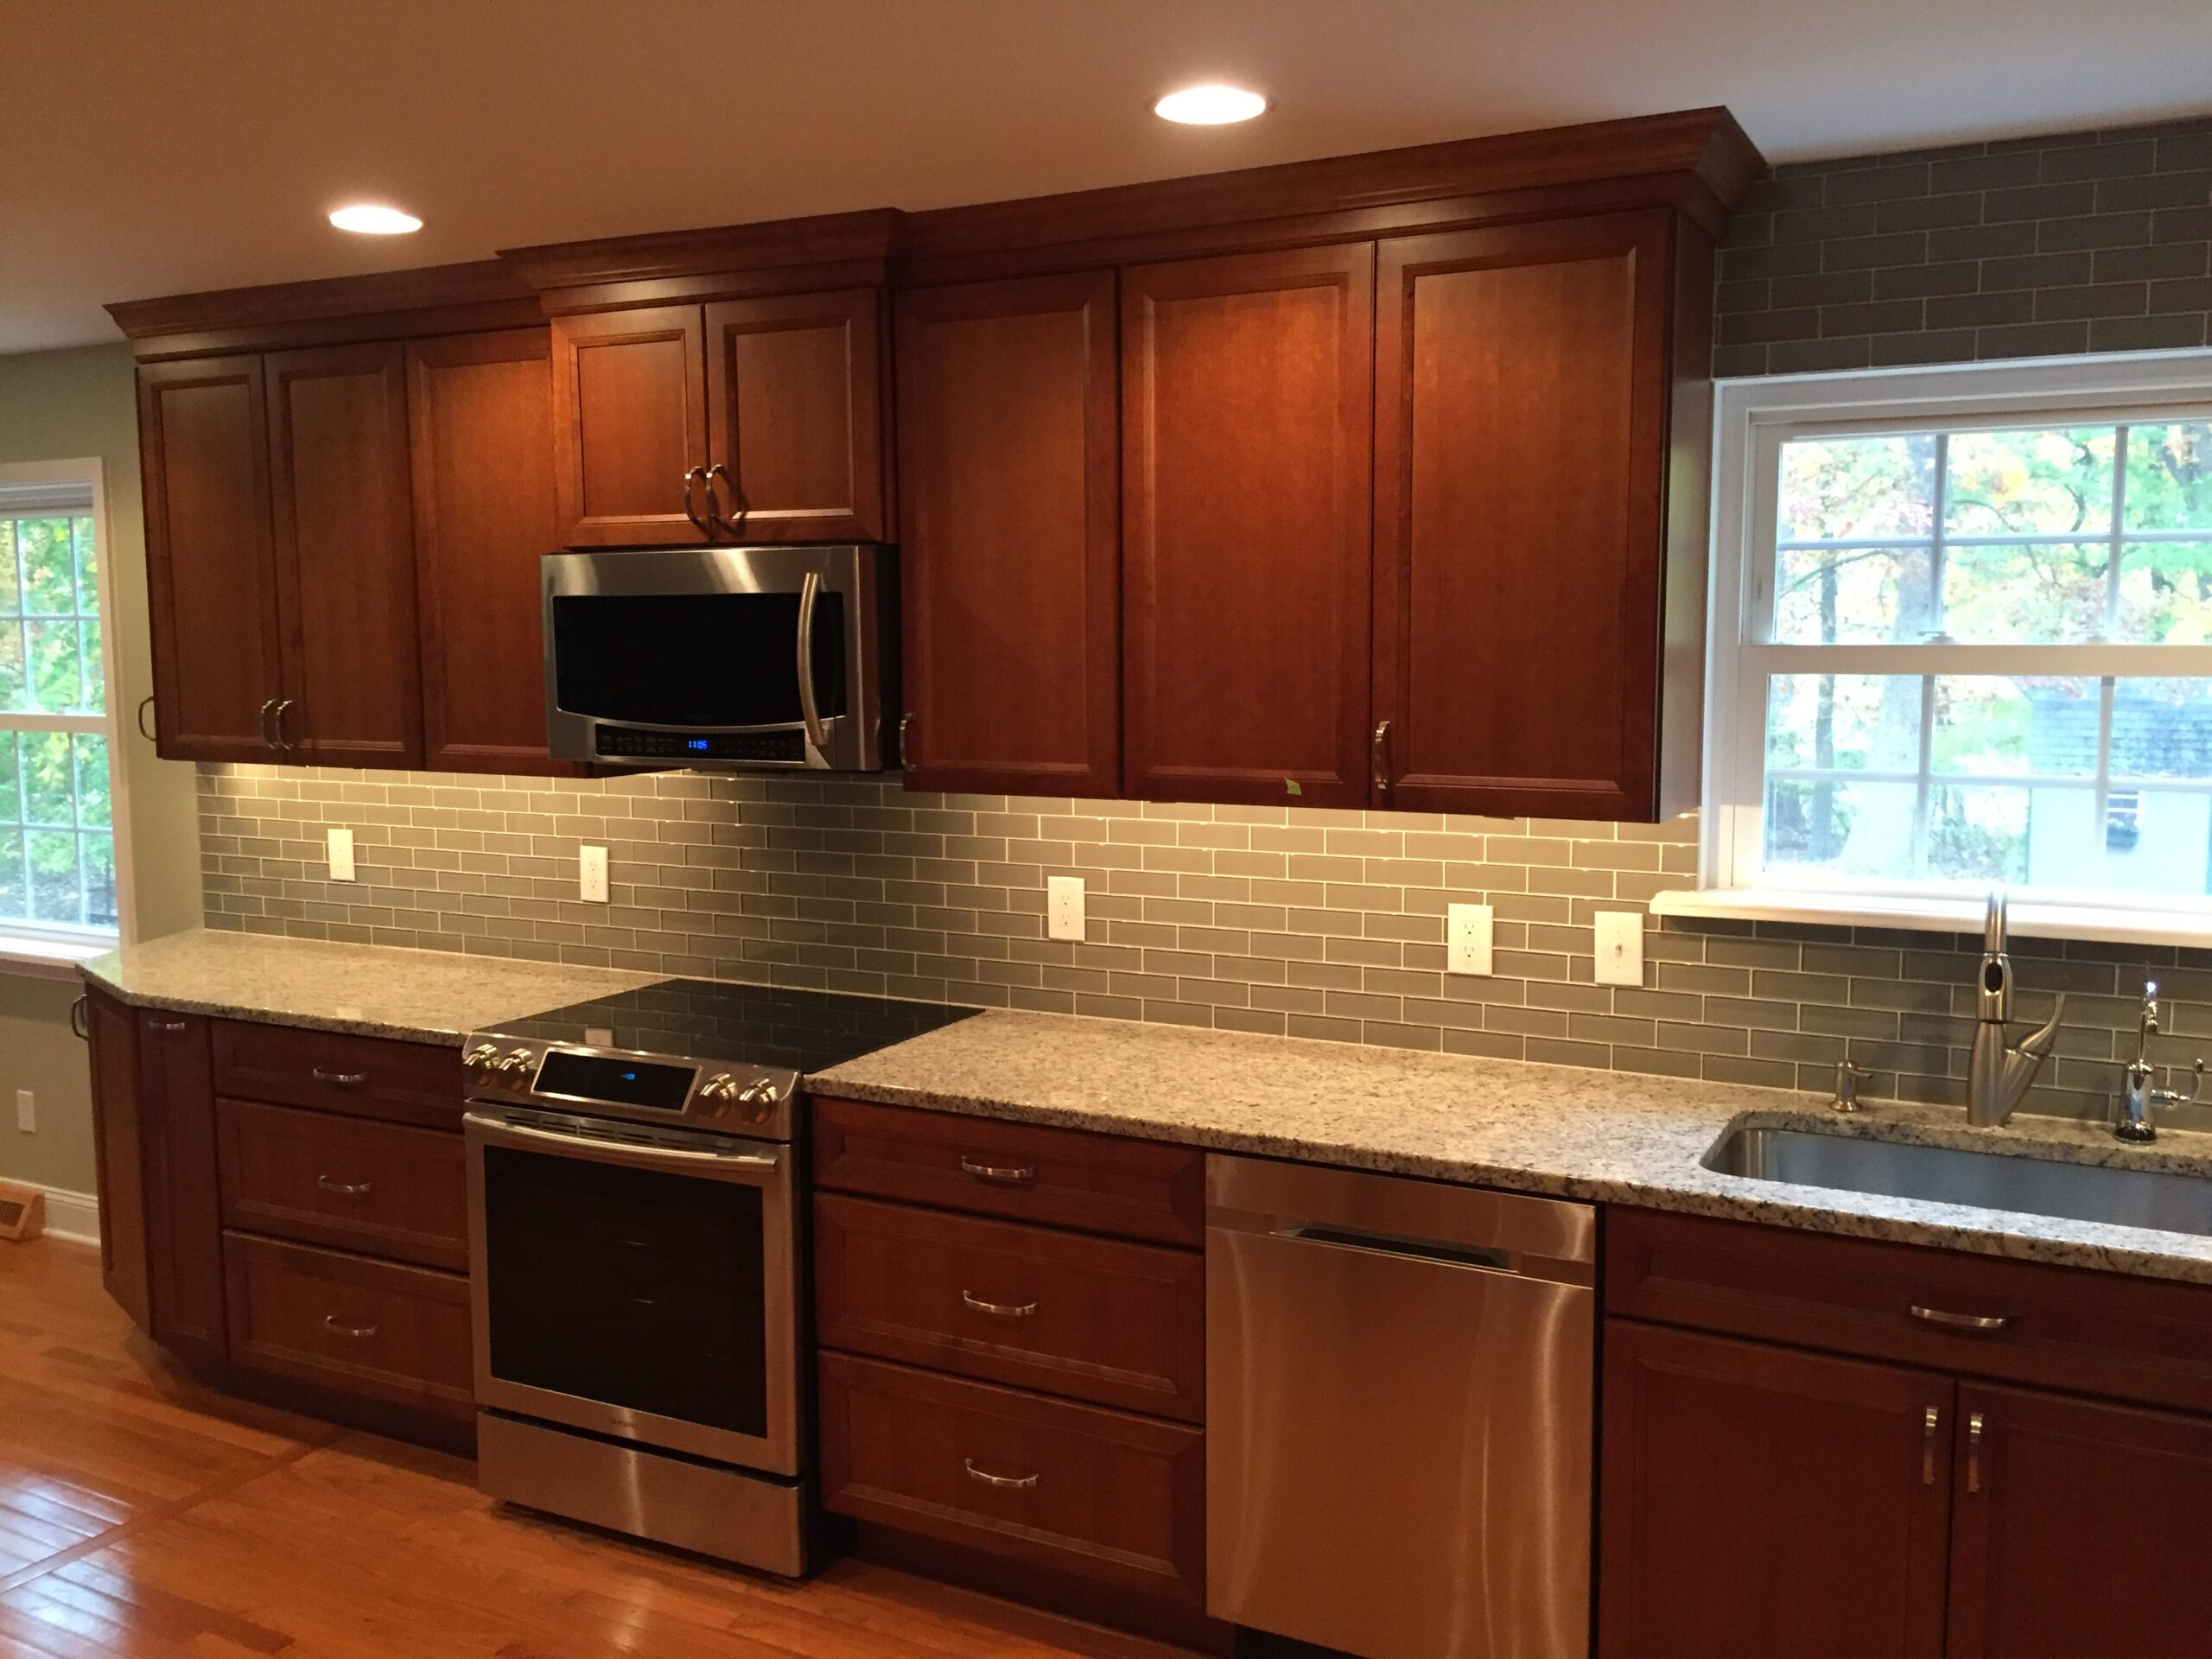 Kitchencabinet renovation PA